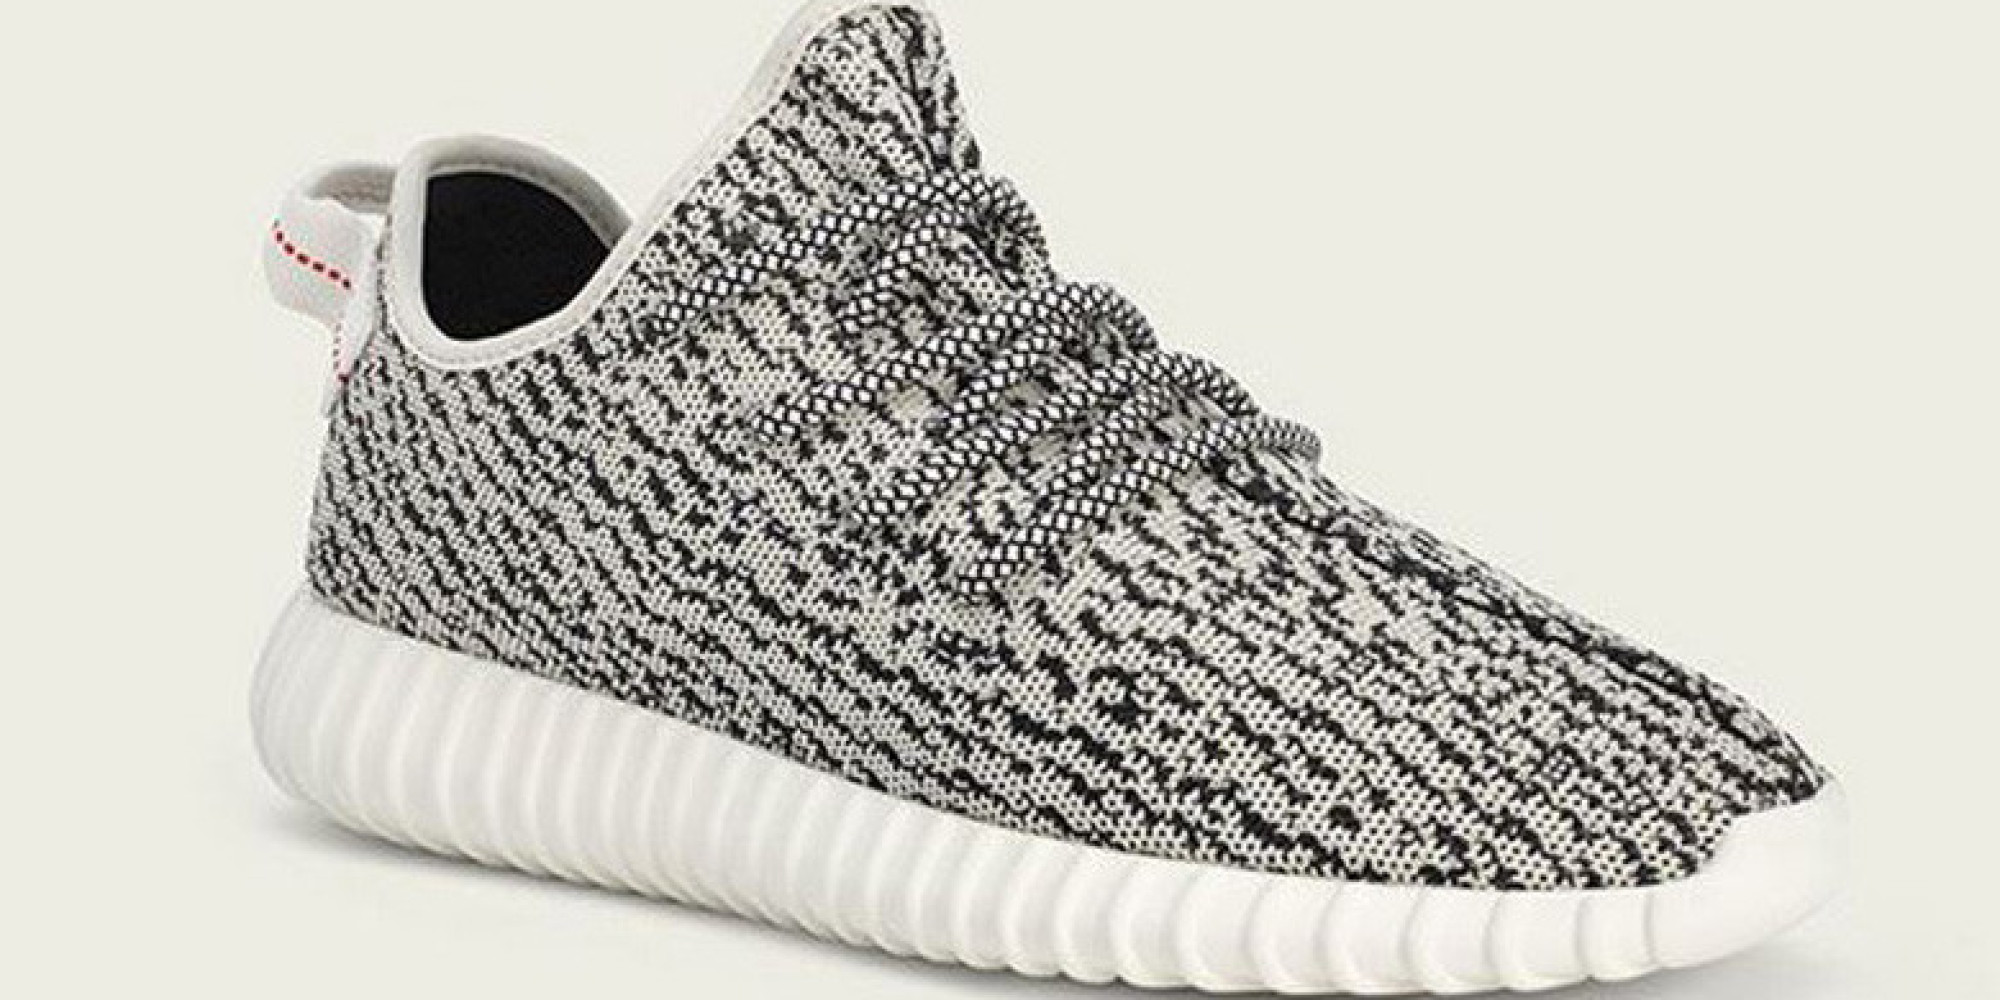 la yeezy boost 350 de kanye west x adidas un succ s annonc. Black Bedroom Furniture Sets. Home Design Ideas